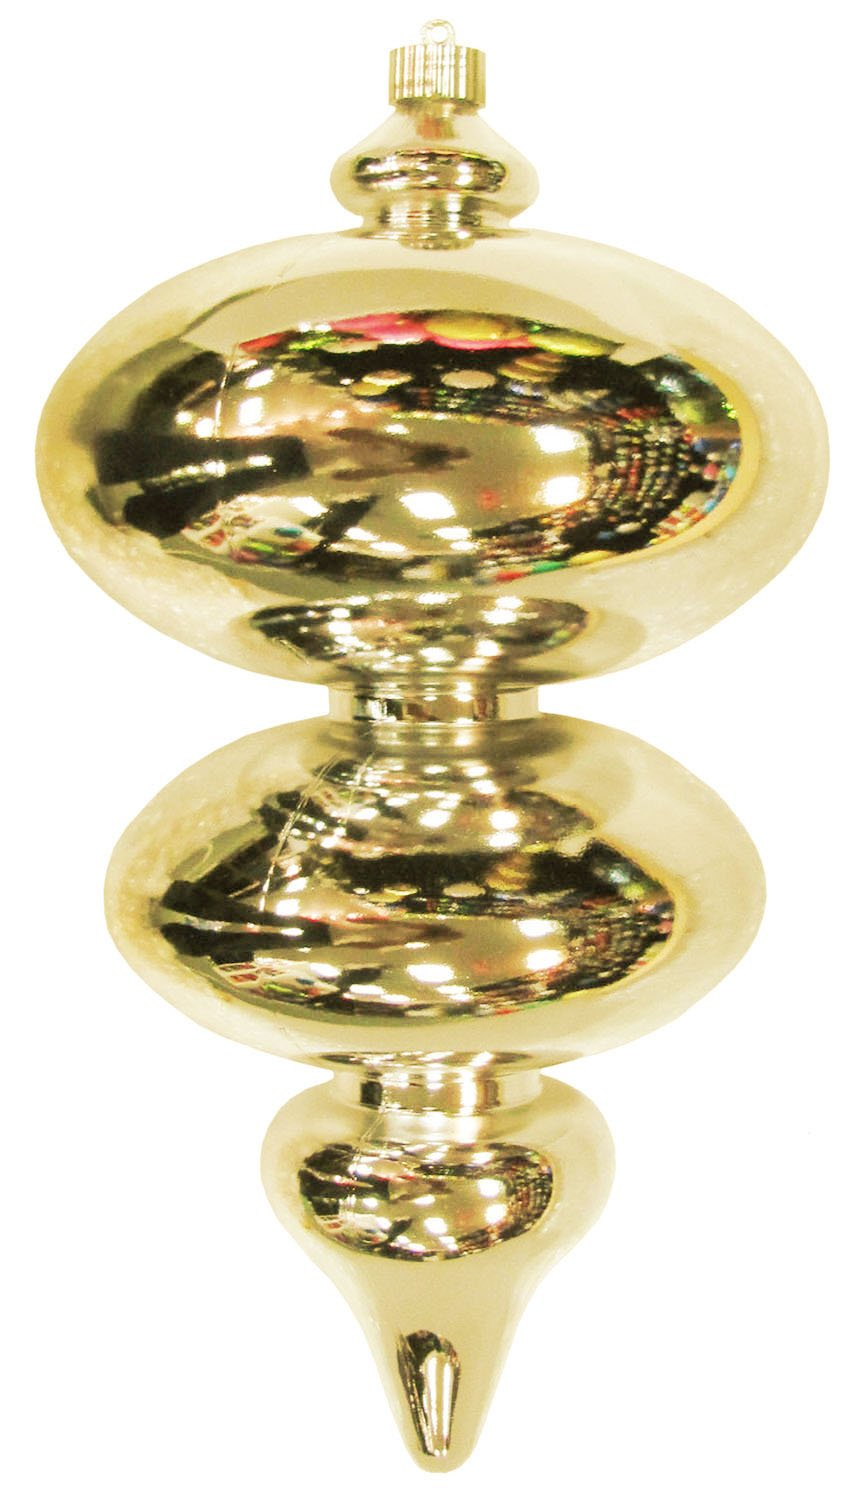 Christmas By Krebs Jumbo Finial Shiny Shatterproof Ornaments, 380mm, Gilded Gold, Set of 4